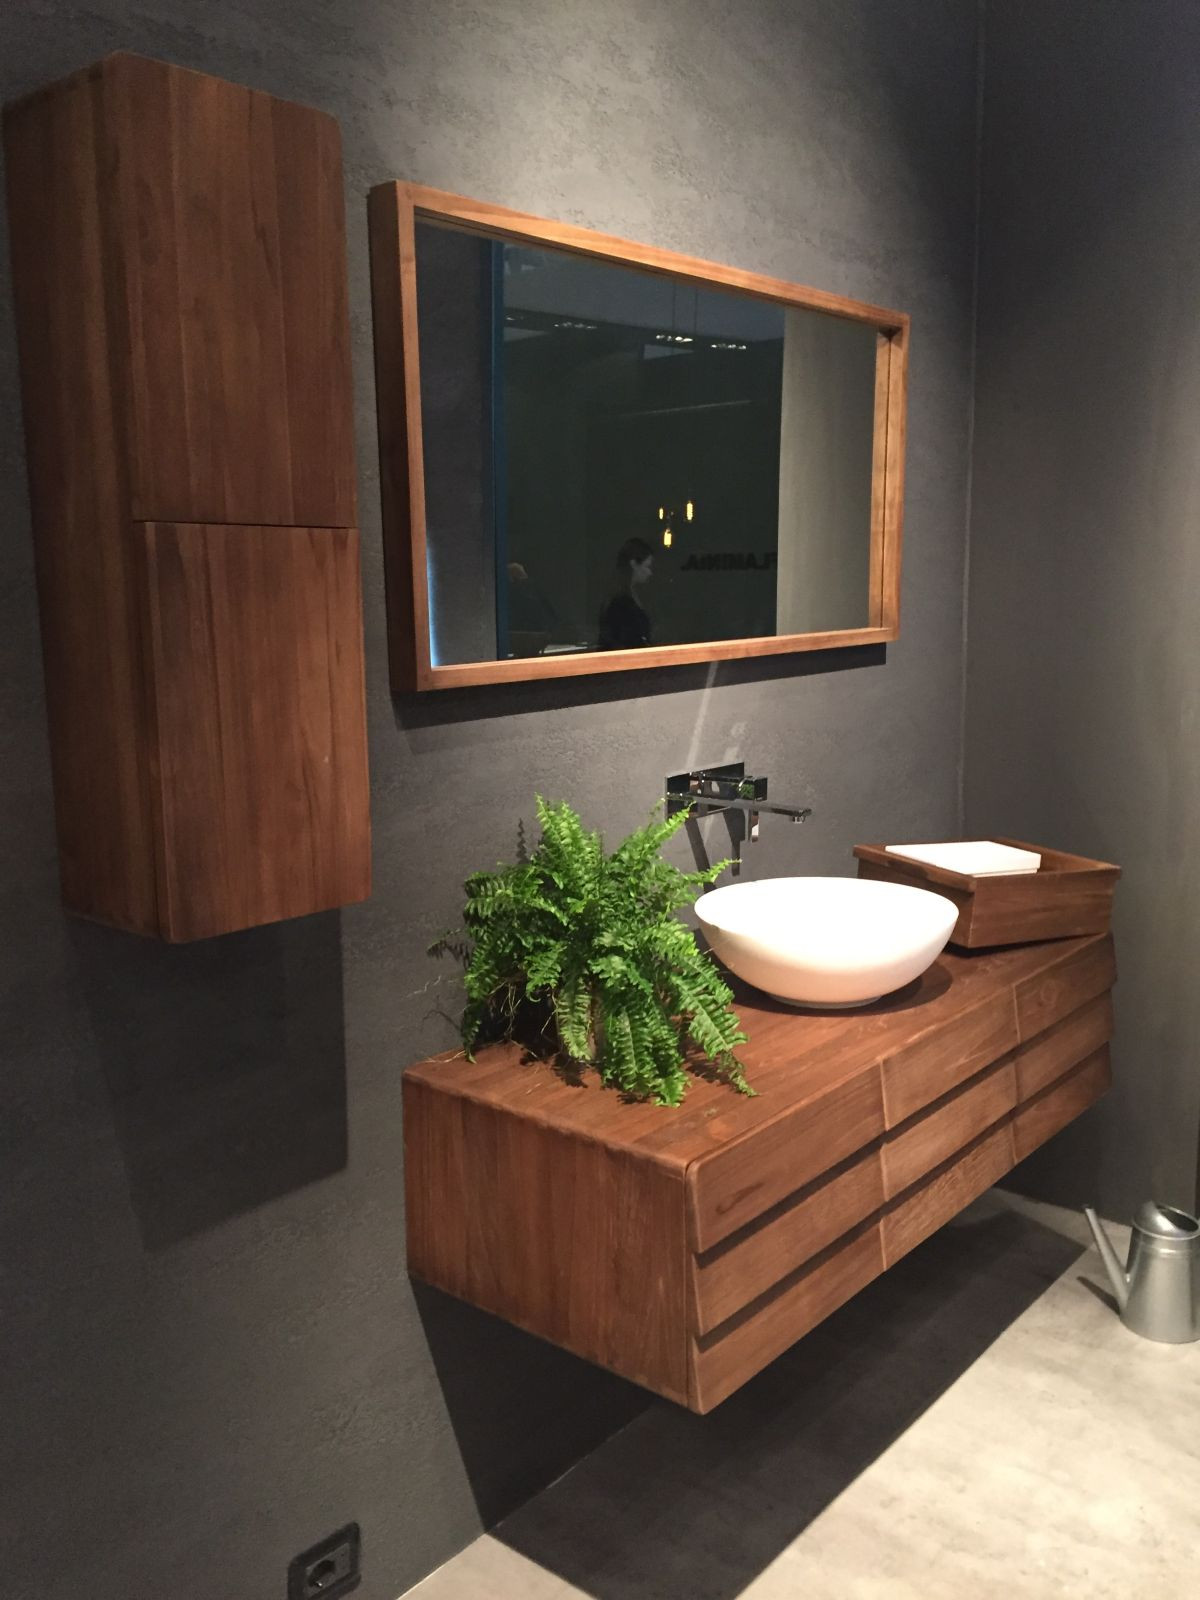 Best ideas about Modern Bathroom Vanities . Save or Pin Stylish Ways To Decorate With Modern Bathroom Vanities Now.